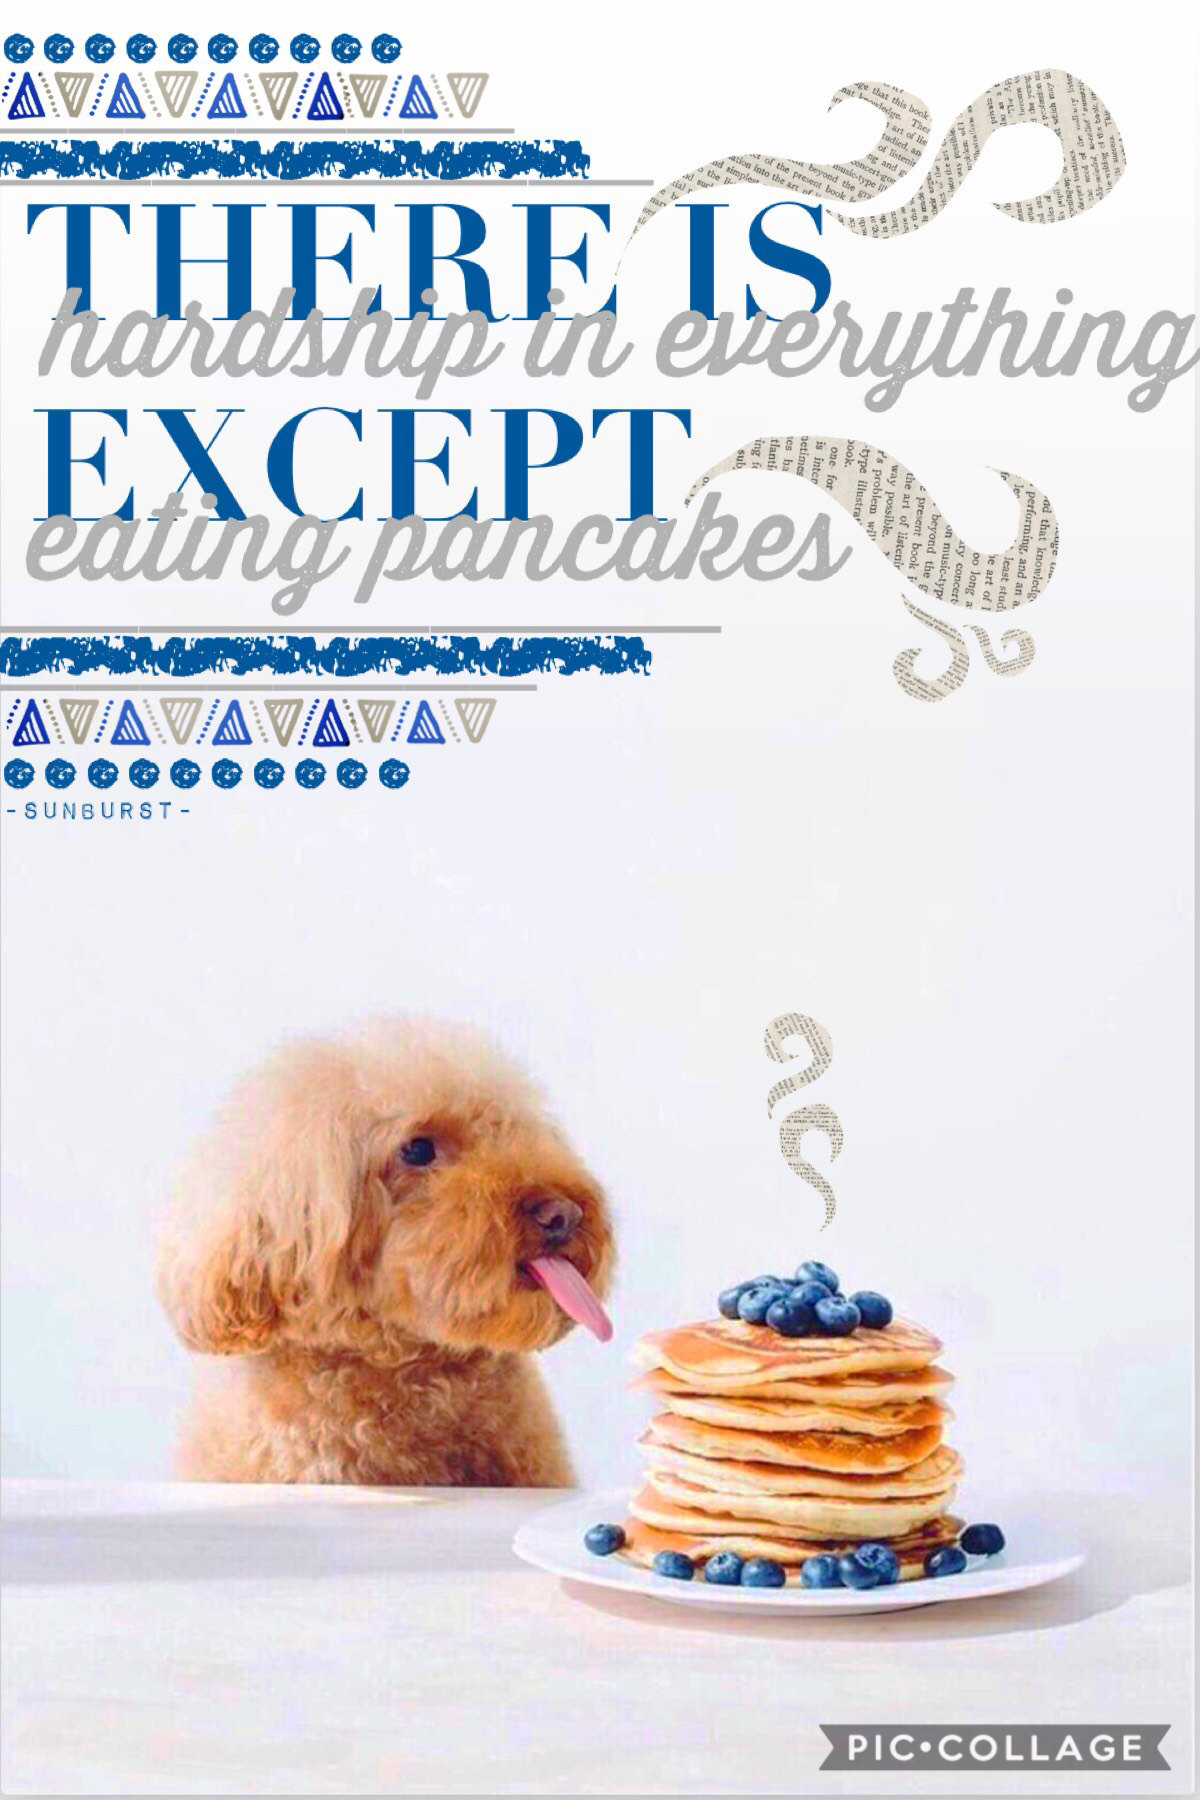 > CLICK FOR PANCAKES < 🥞 🤤  THE PUPPY IS SOO FWUFFY credits to simplicity_extras! SHE IS AWESOME FOLLOW HER QOTD: pancakes or waffles? AOTD: PANCAKES 🥞